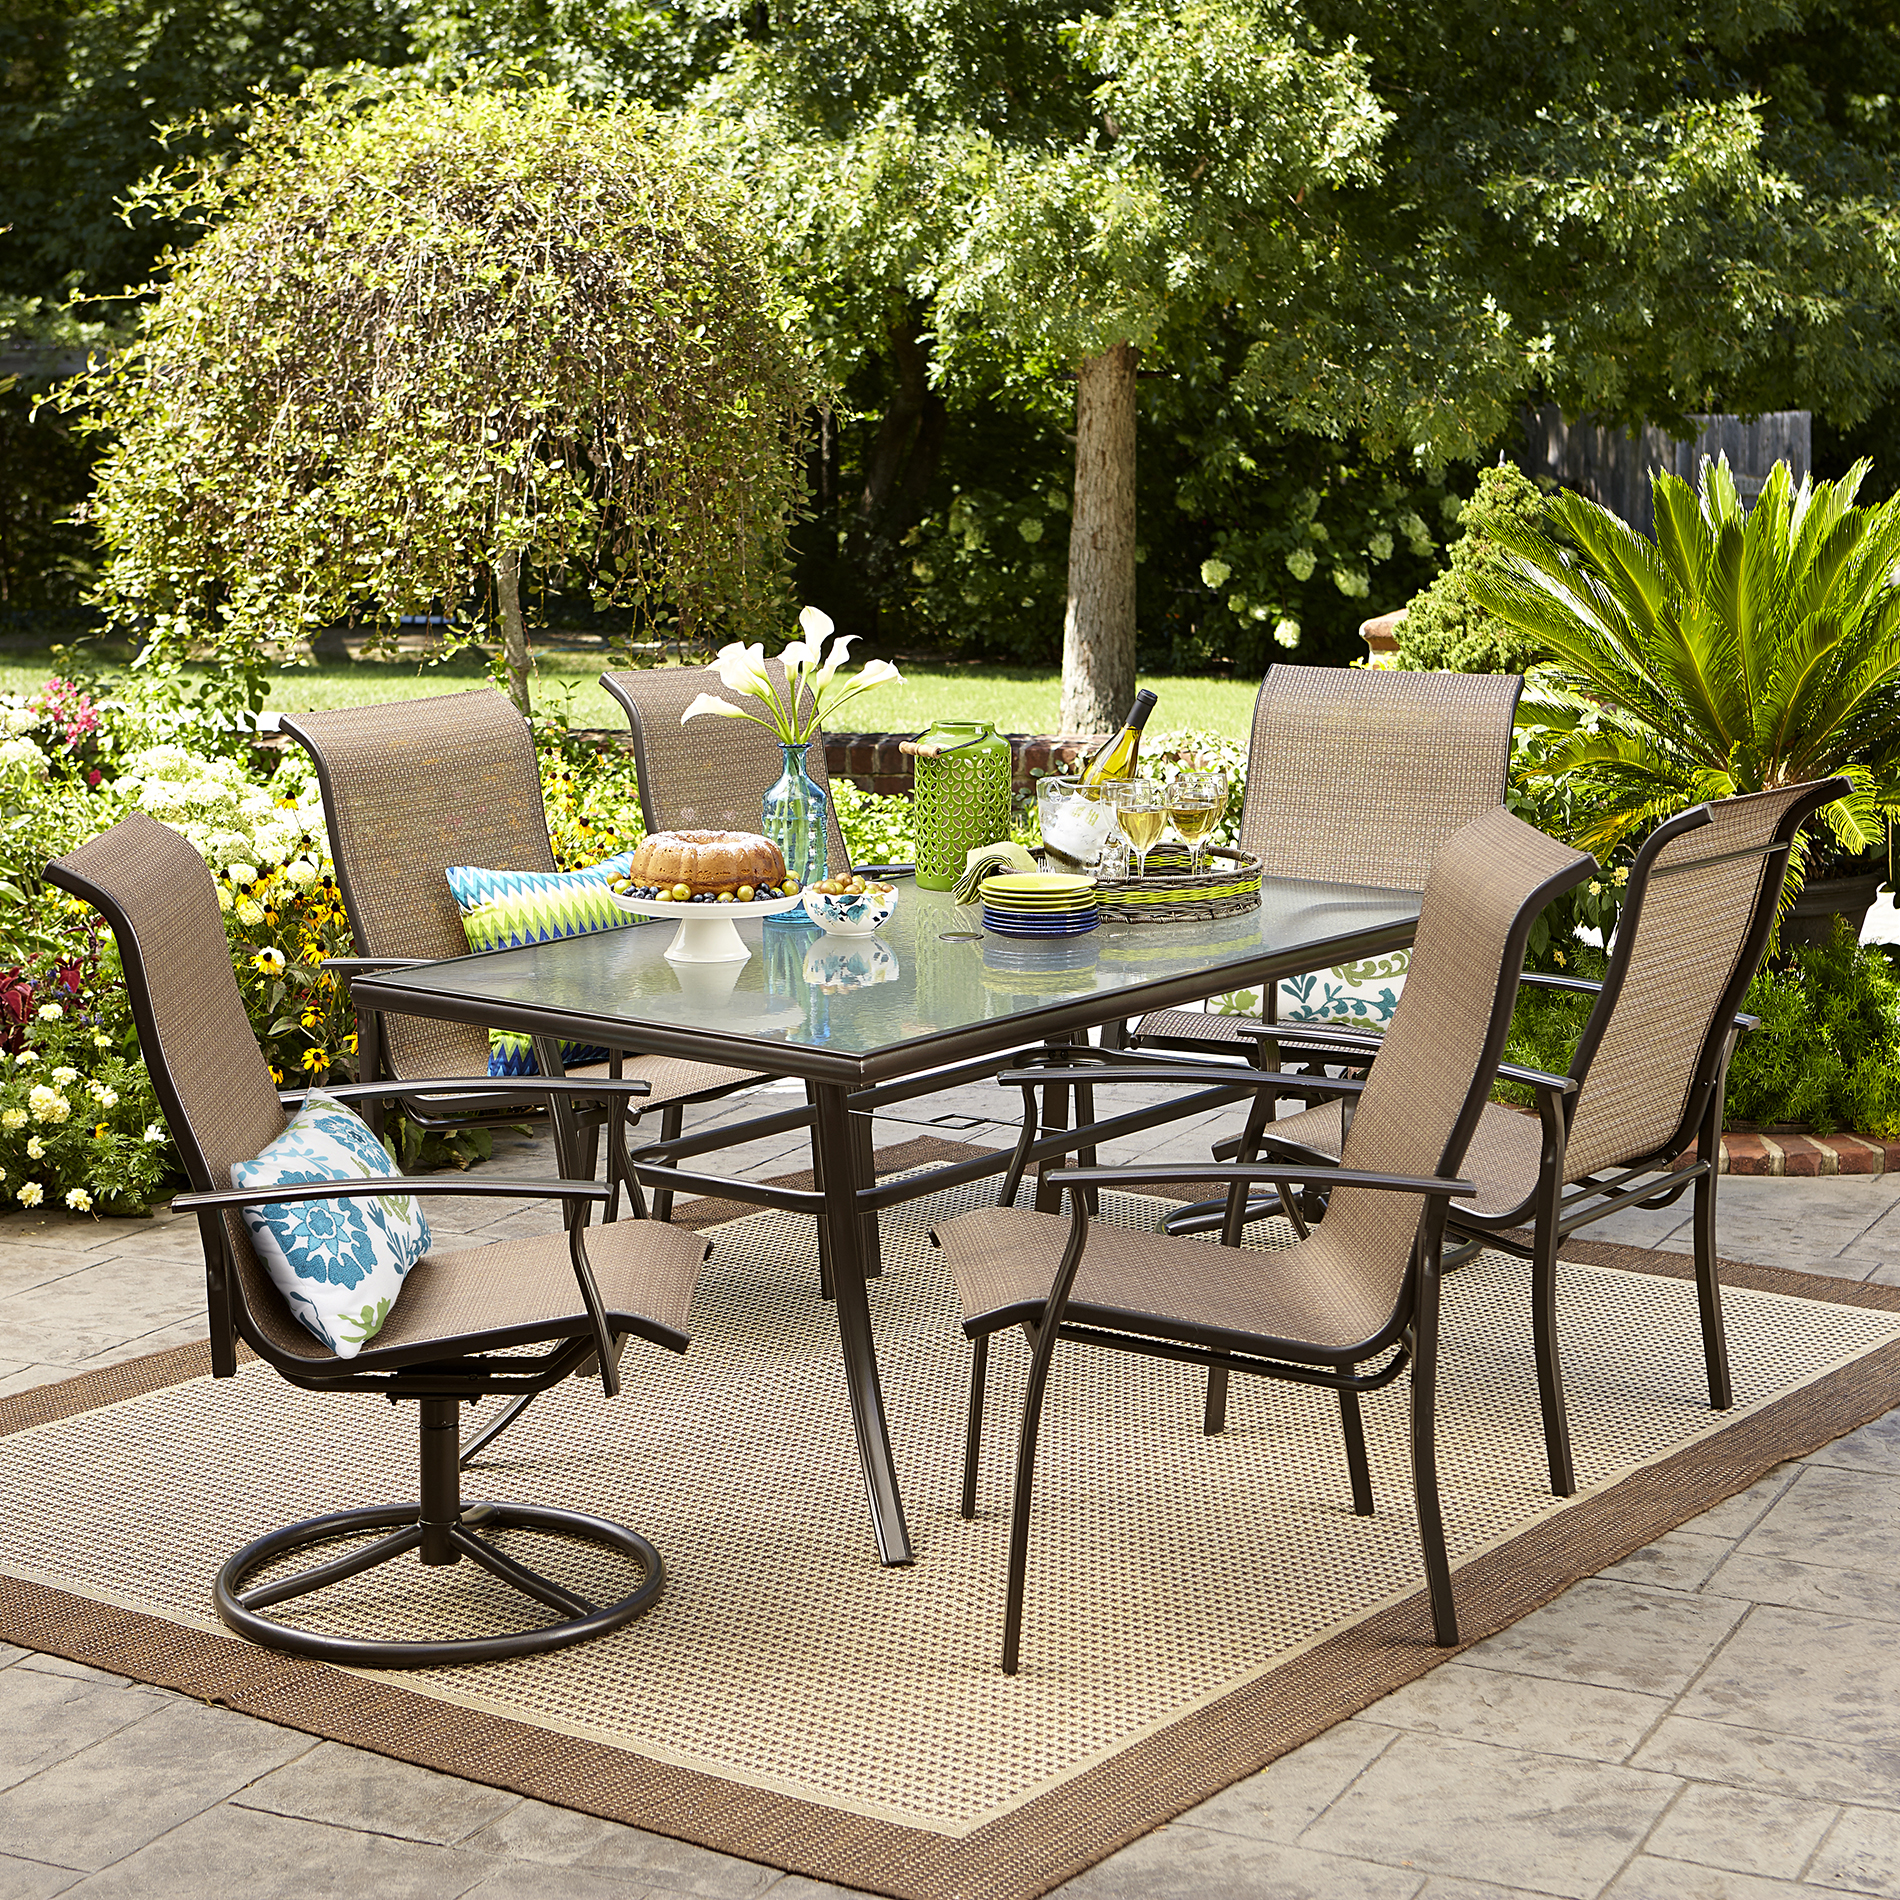 outdoor patio dining set furniture Garden Oasis Harrison 7 pc. Textured Glass-Top Dining Set